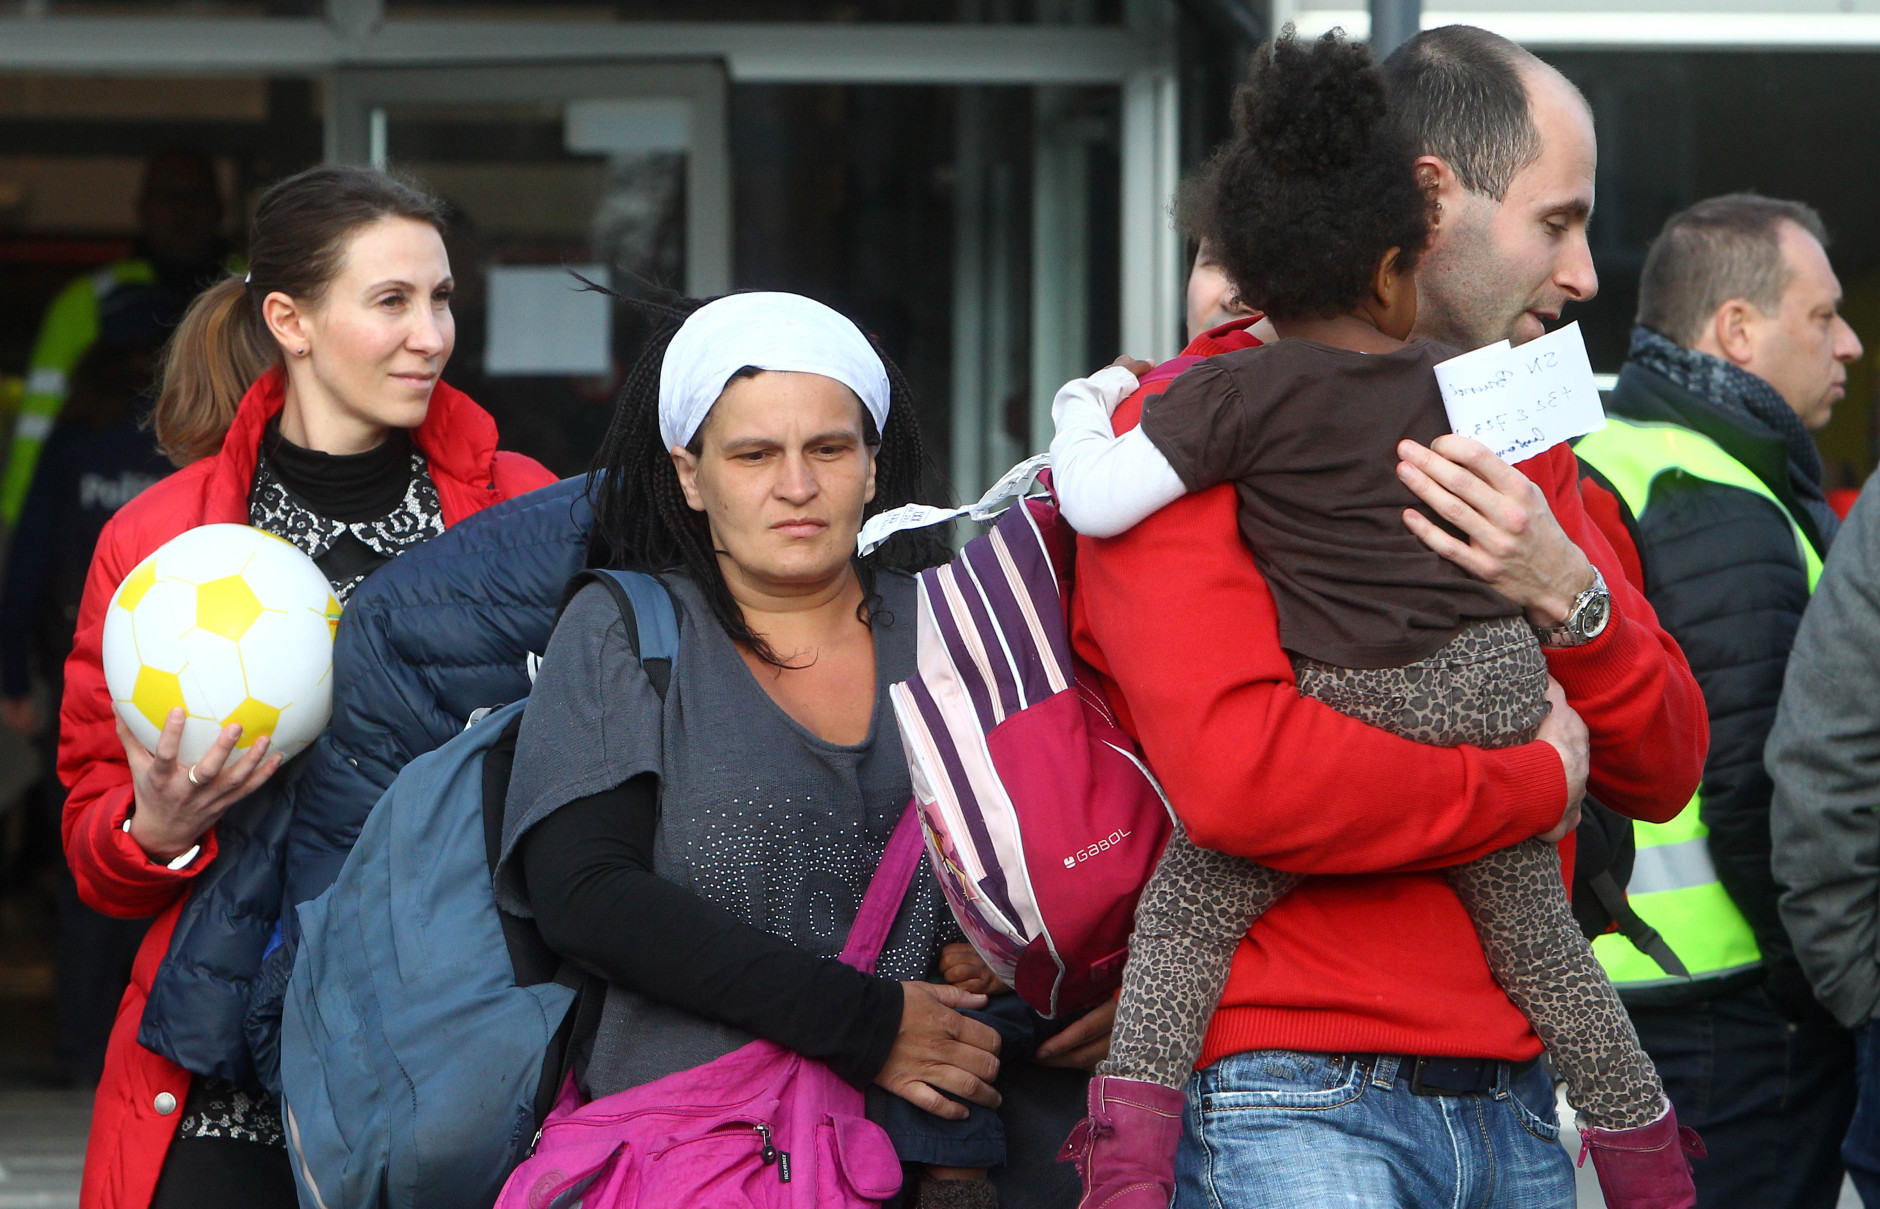 Passengers leave a gym where they took shelter after the explosions, near  the  Zaventem Airport in Brussels, Tuesday, March 22, 2016. Bombs struck the Brussels airport and one of the city's metro stations Tuesday, killing and wounding dozens of people, as a European capital was again locked down amid heightened security threats. (AP Photo/Michel Spingler)